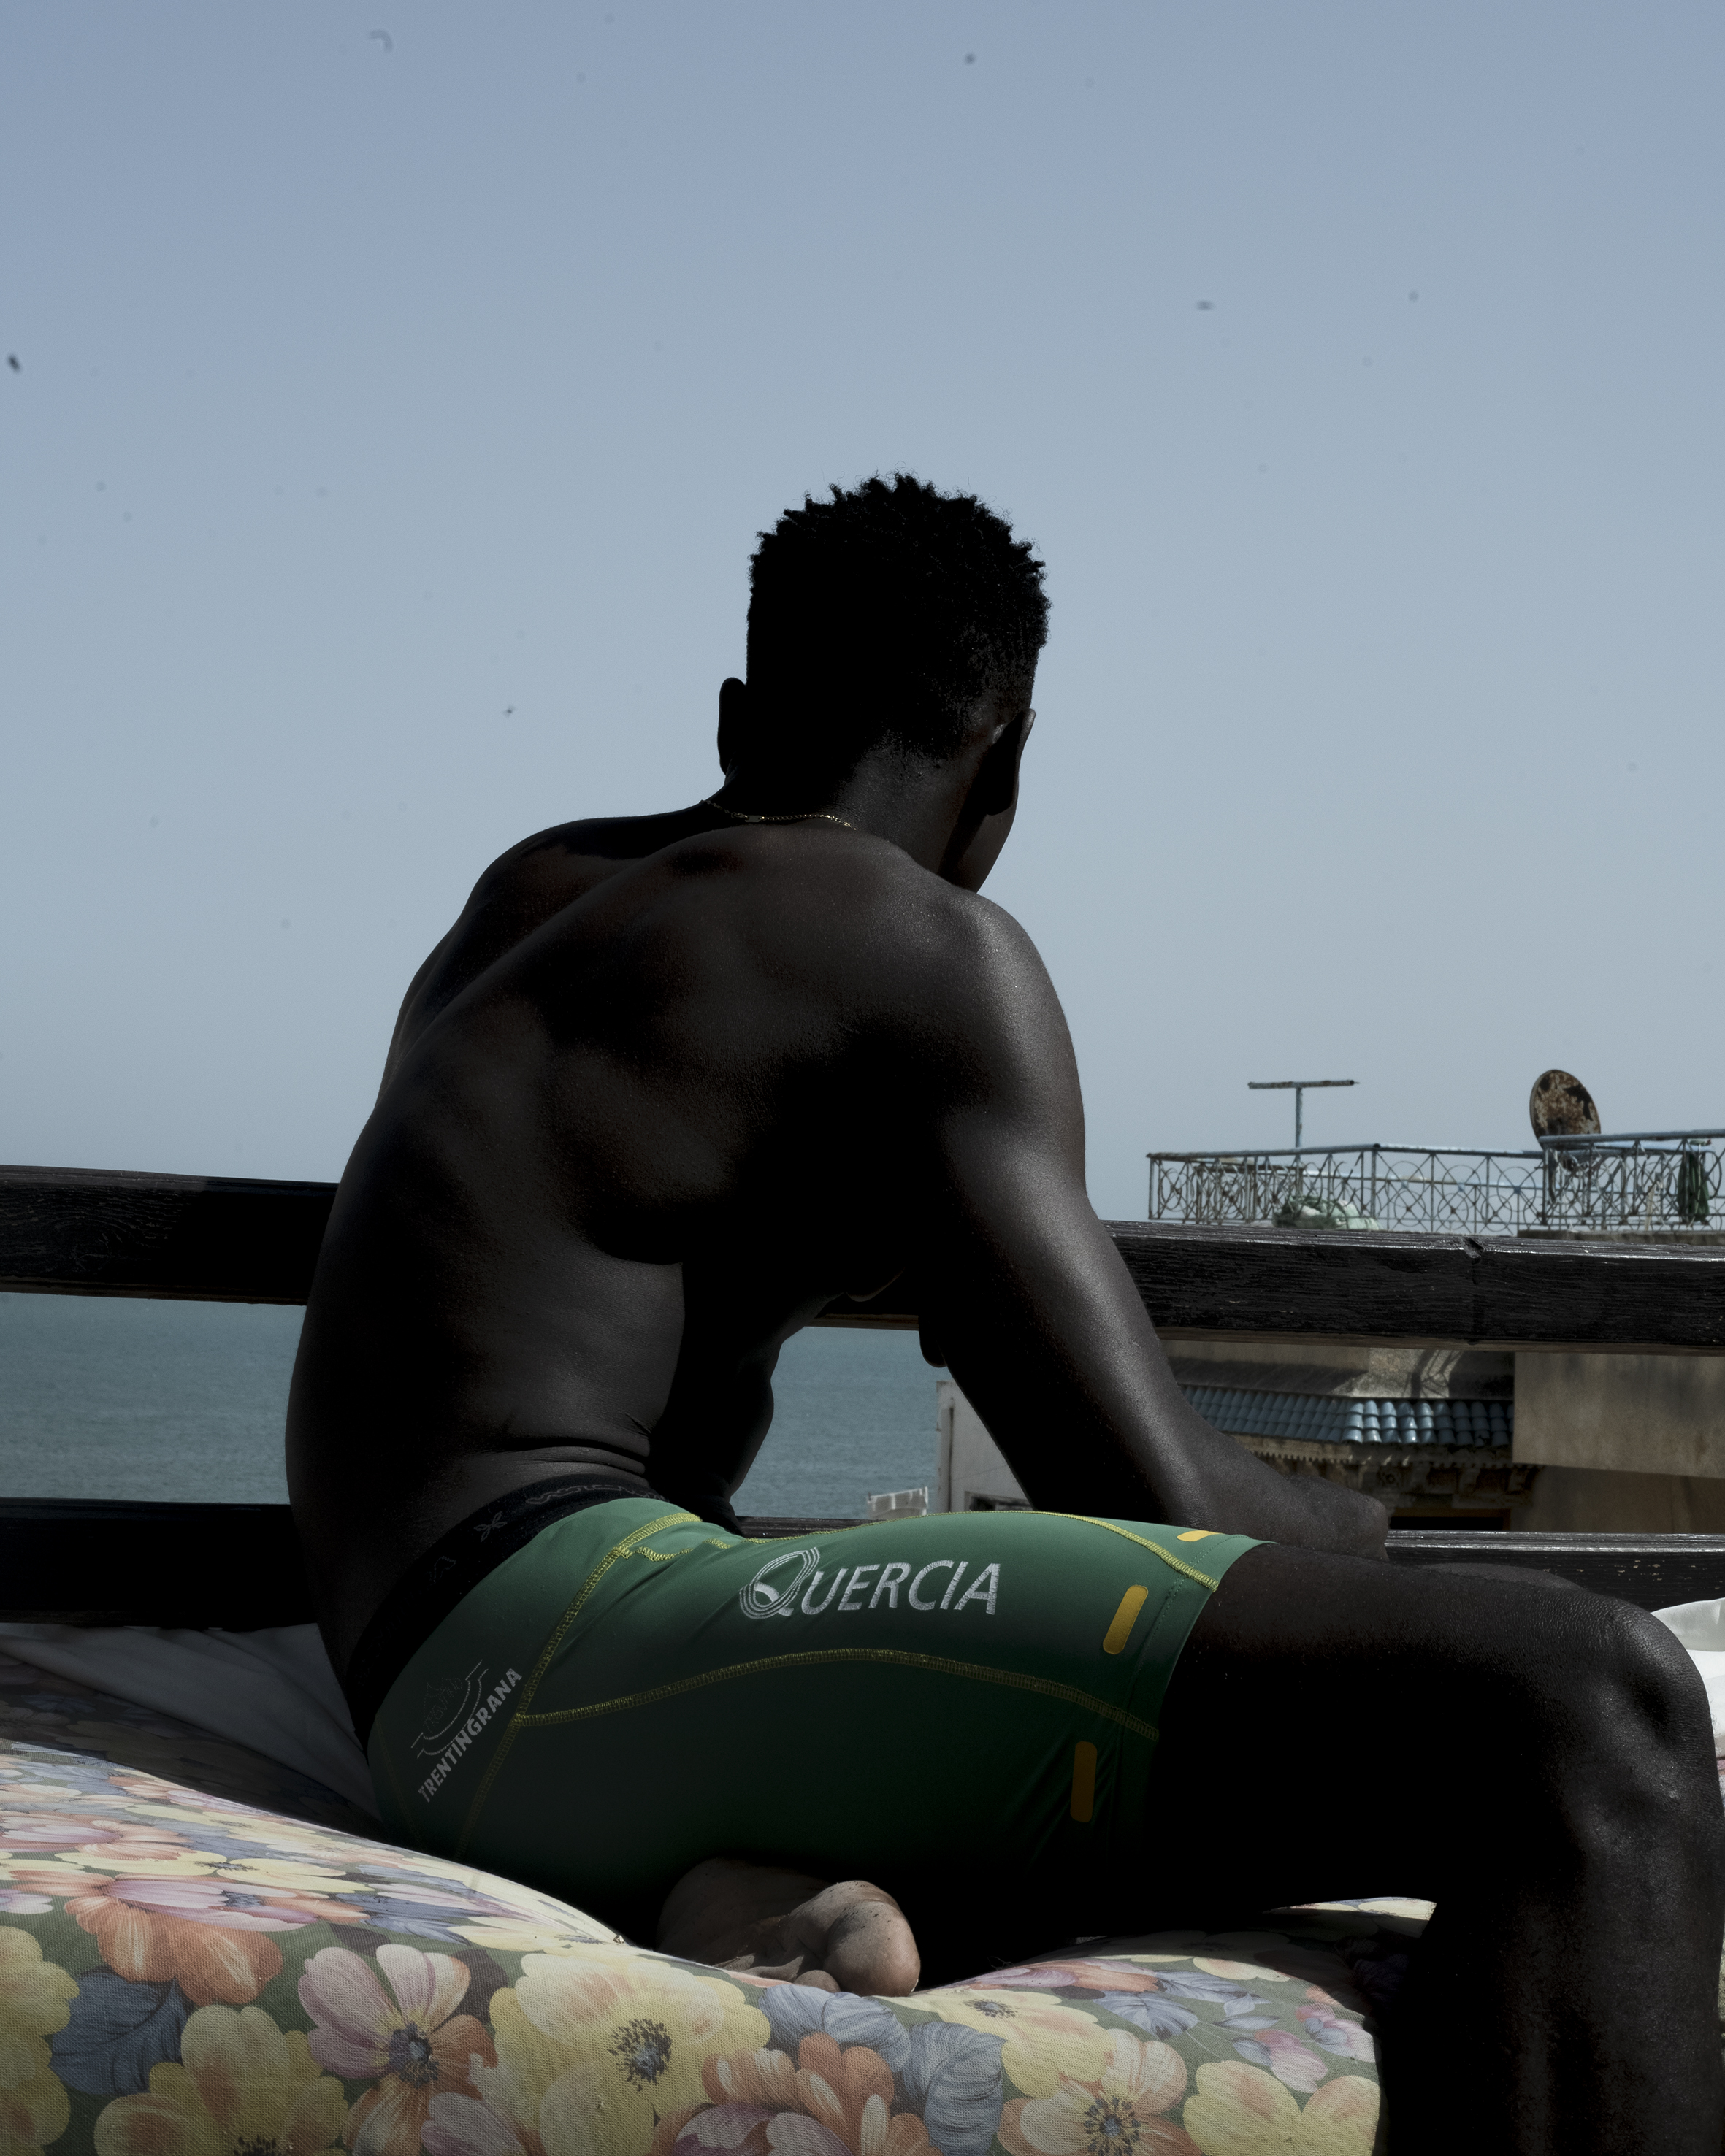 Man in shorts and shirtless sits on a floral cushion on a rooftop overlooking the ocean.